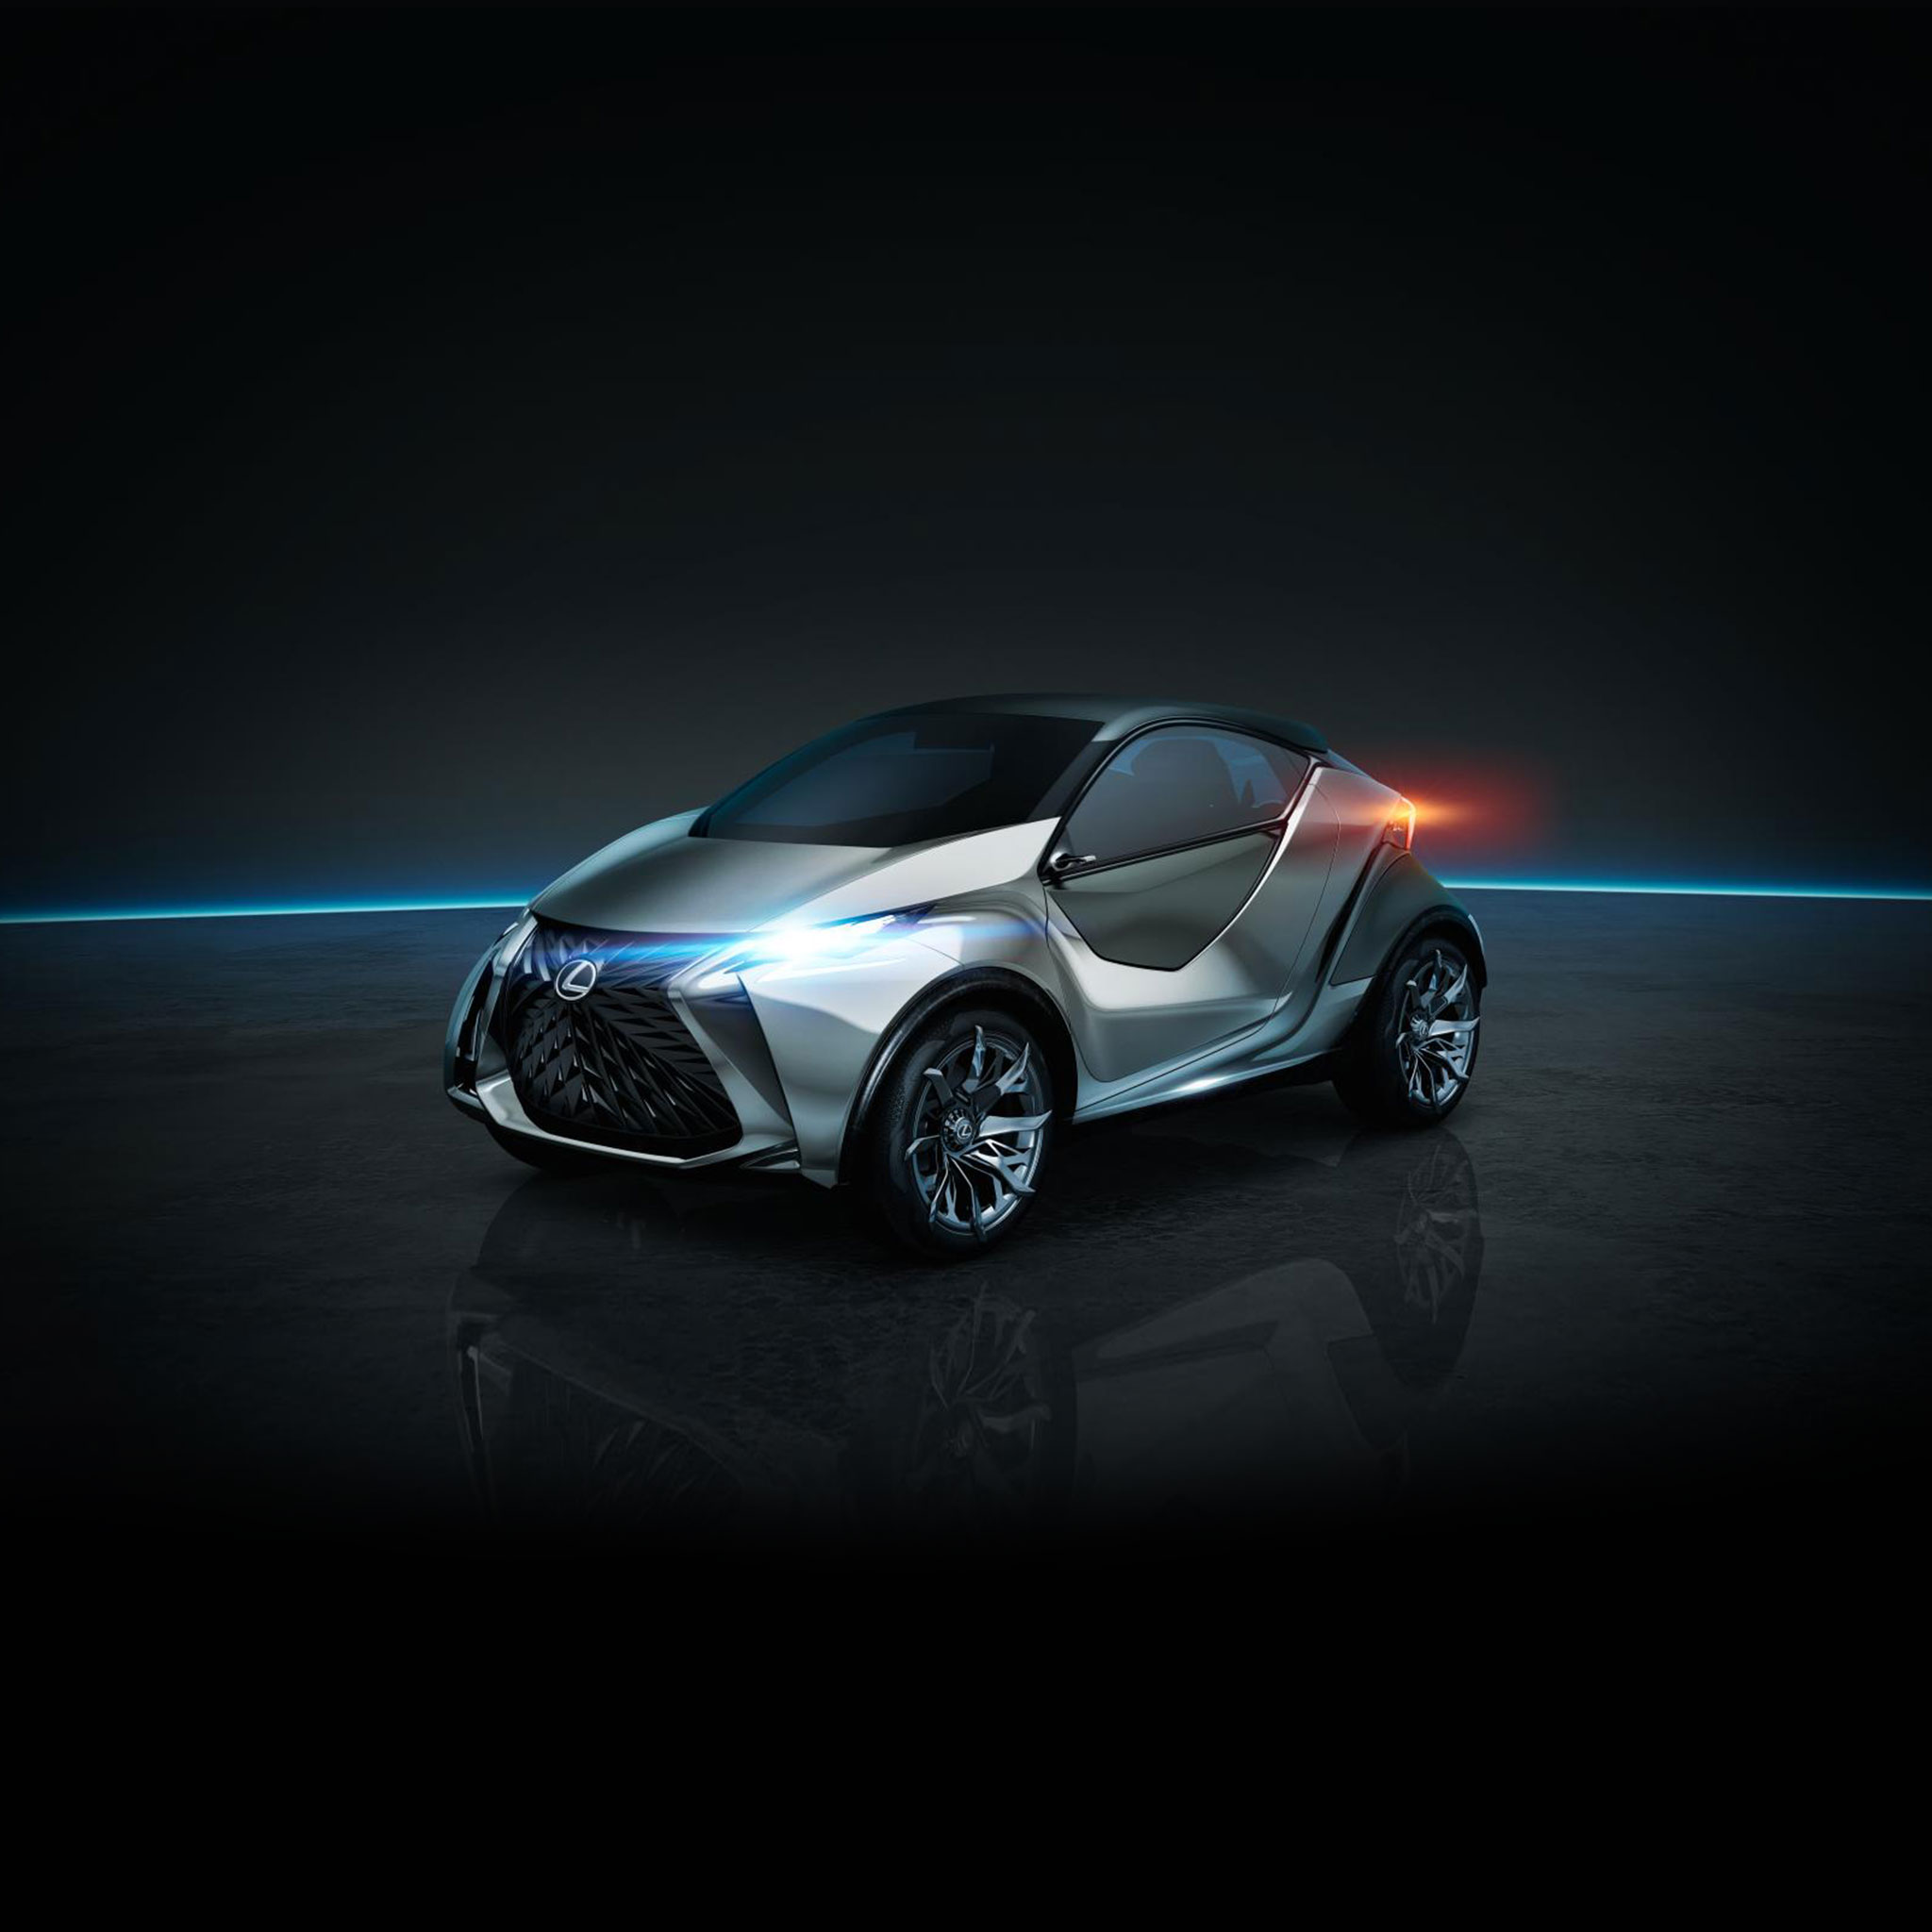 Introducing the first-ever Lexus LF-SA - lexus.com